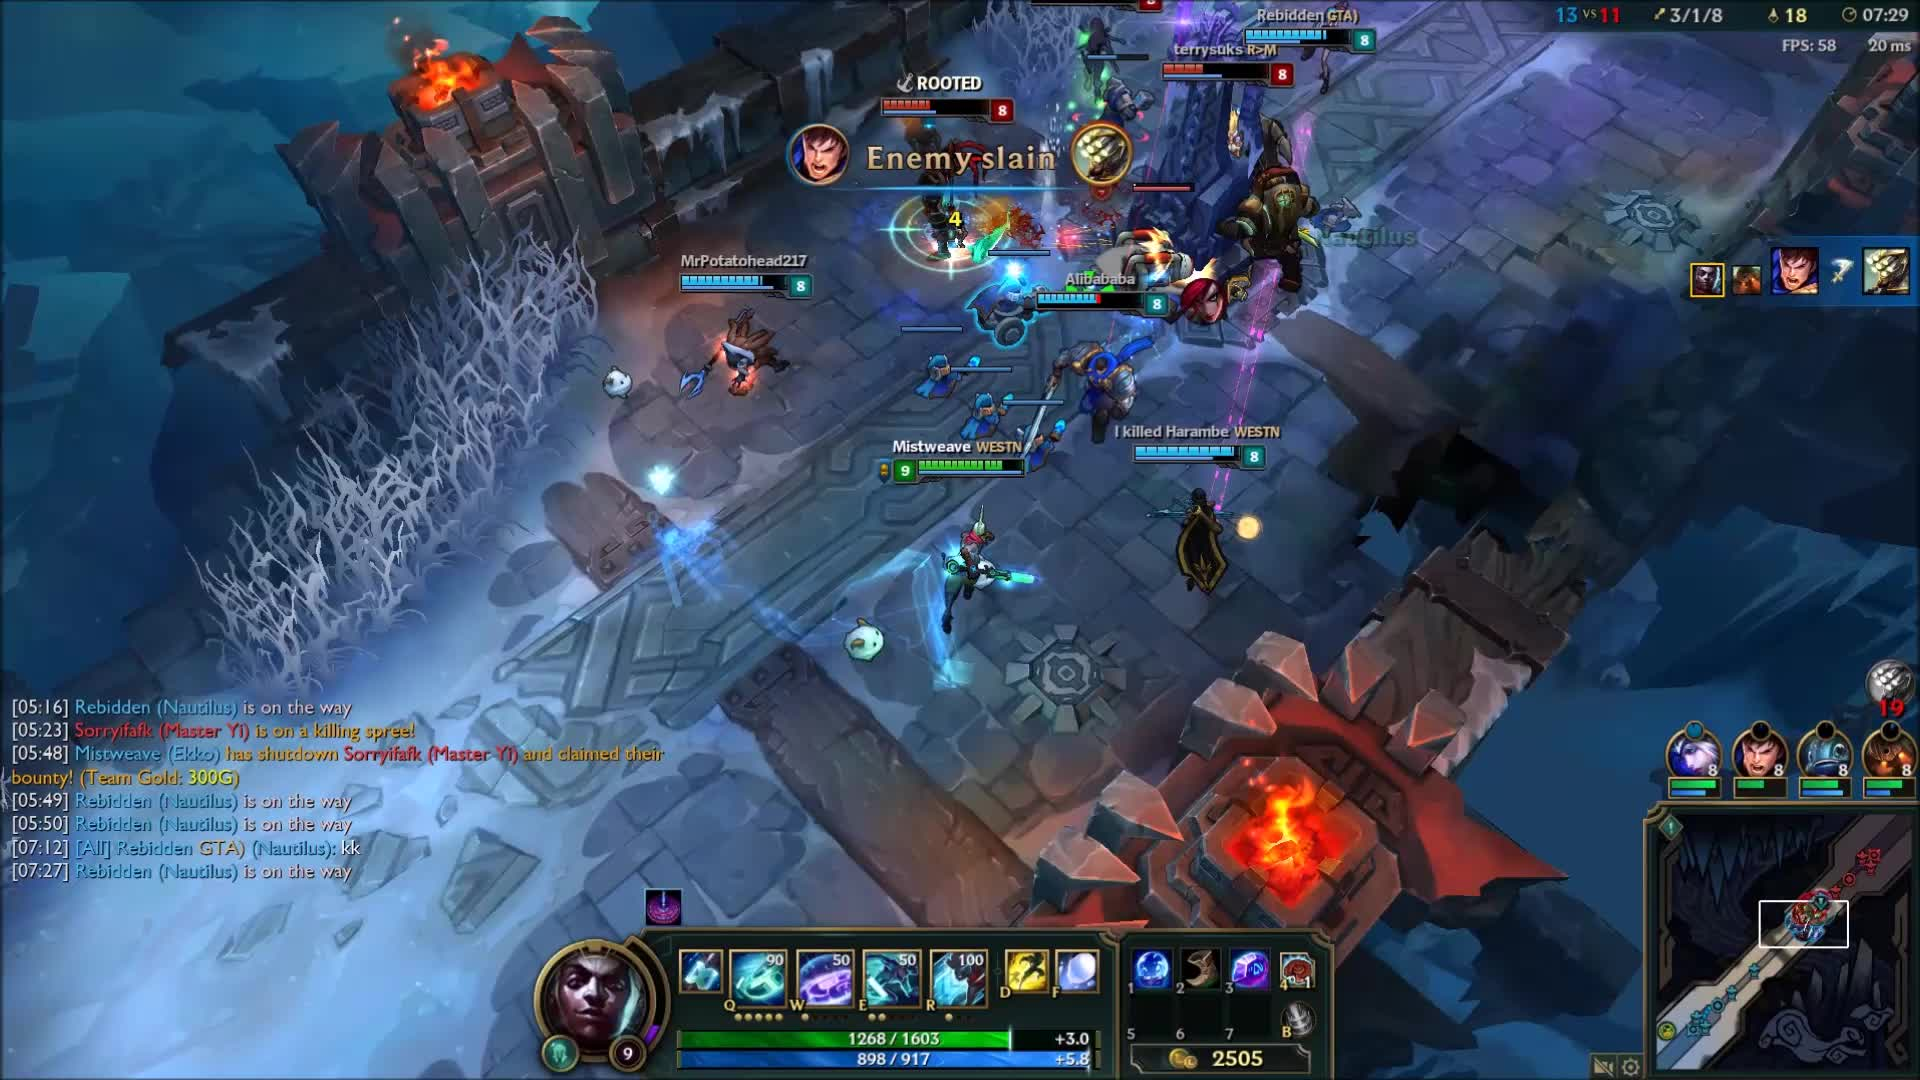 Aram Plays GIFs